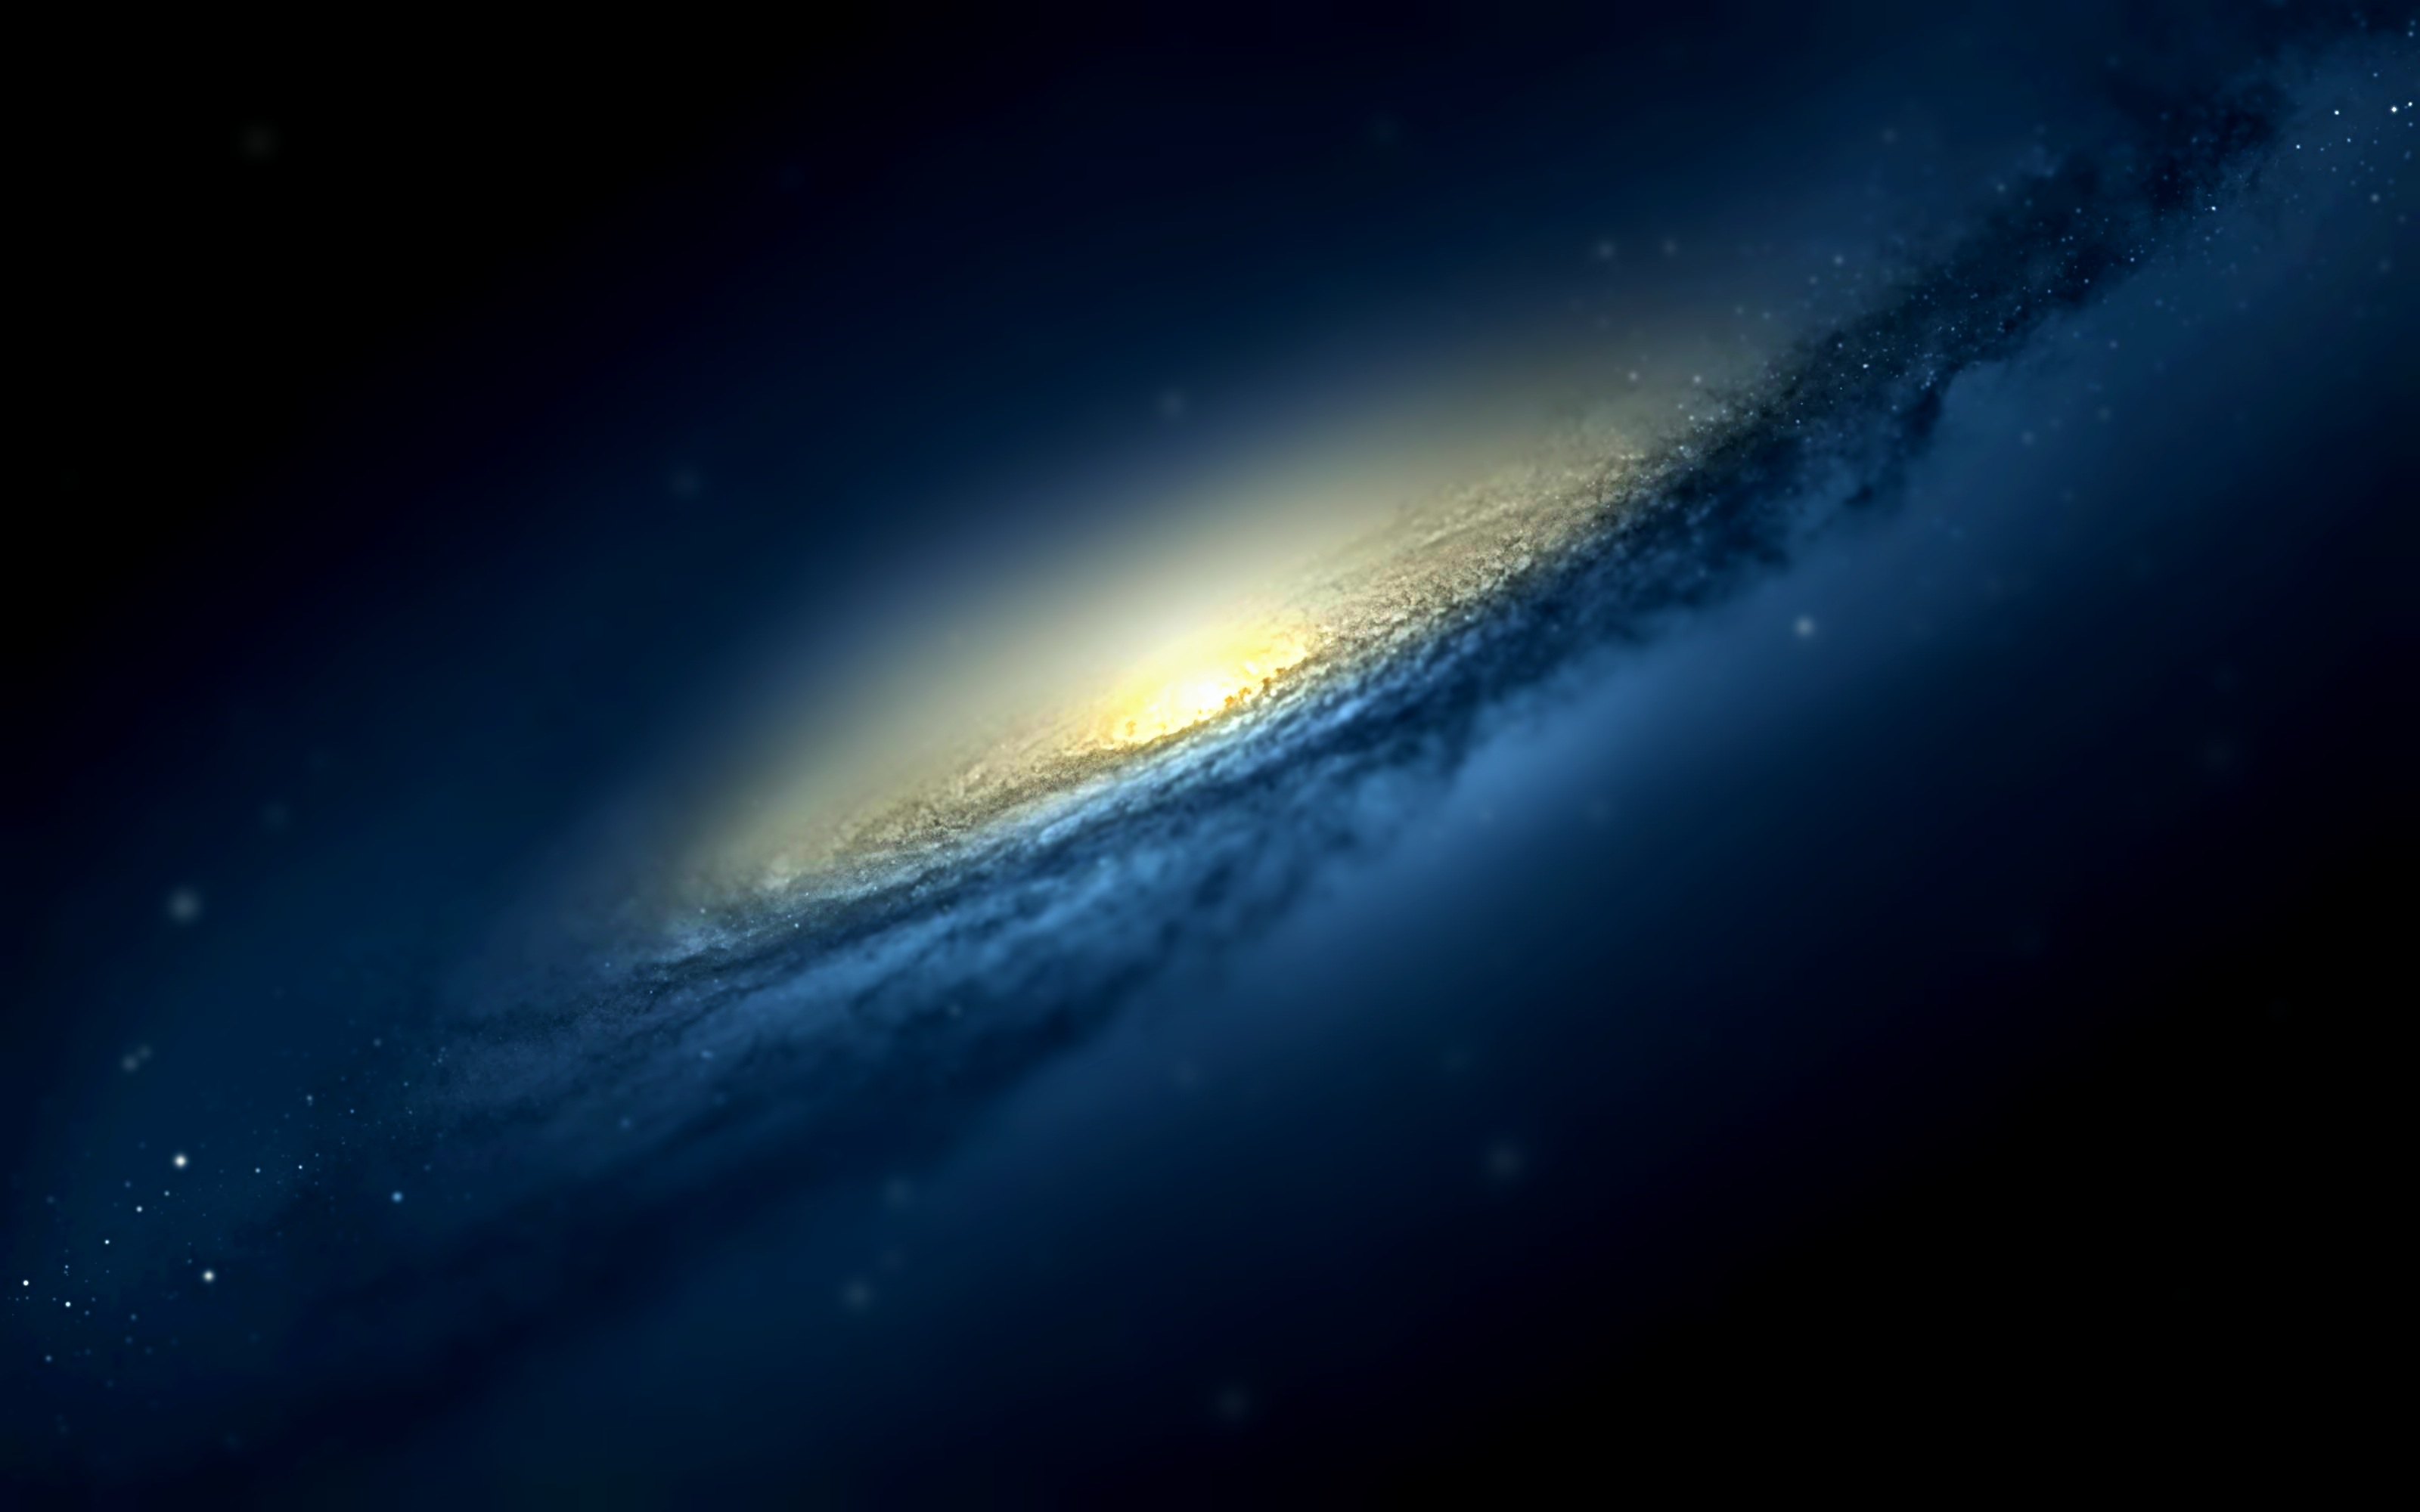 Apple os x wallpaper galaxy by limitededitionlte on deviantart for Innenarchitektur mac os x